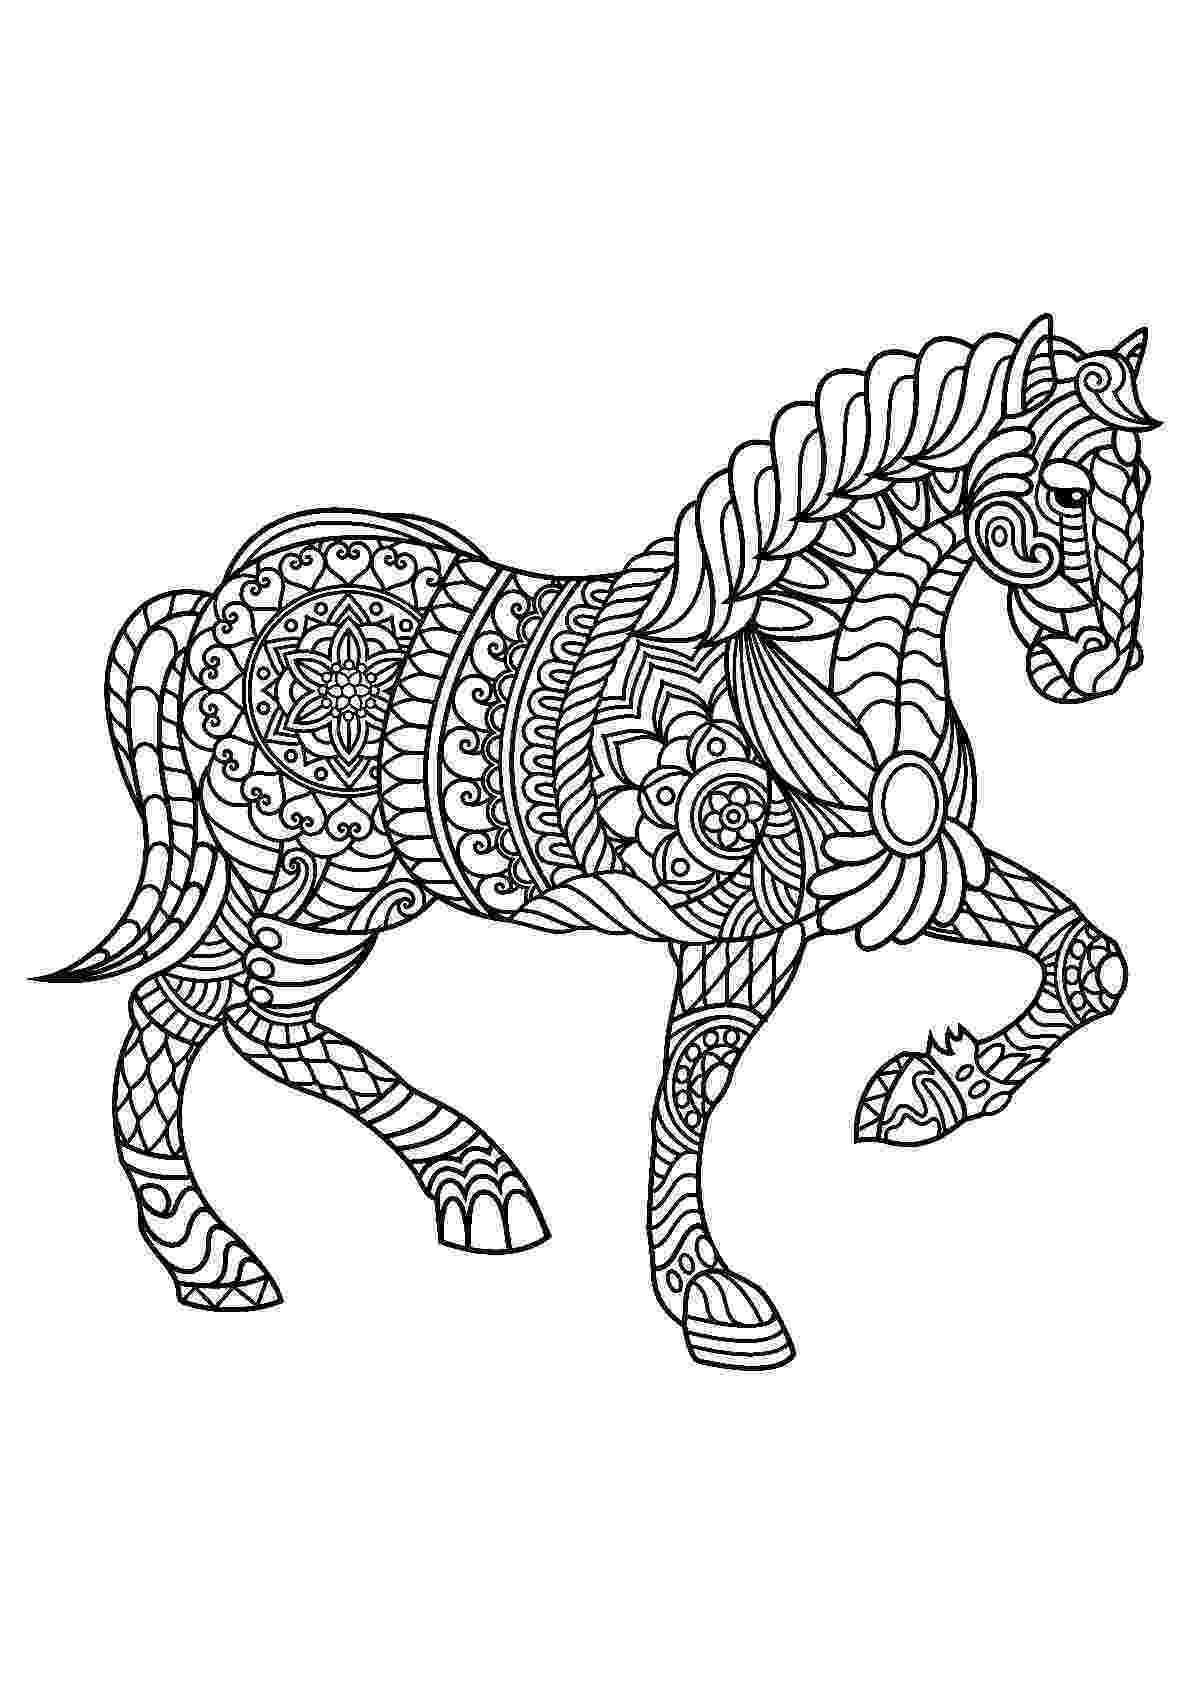 horse coloring pages to print for free 30 best horse coloring pages ideas we need fun coloring horse free for pages print to